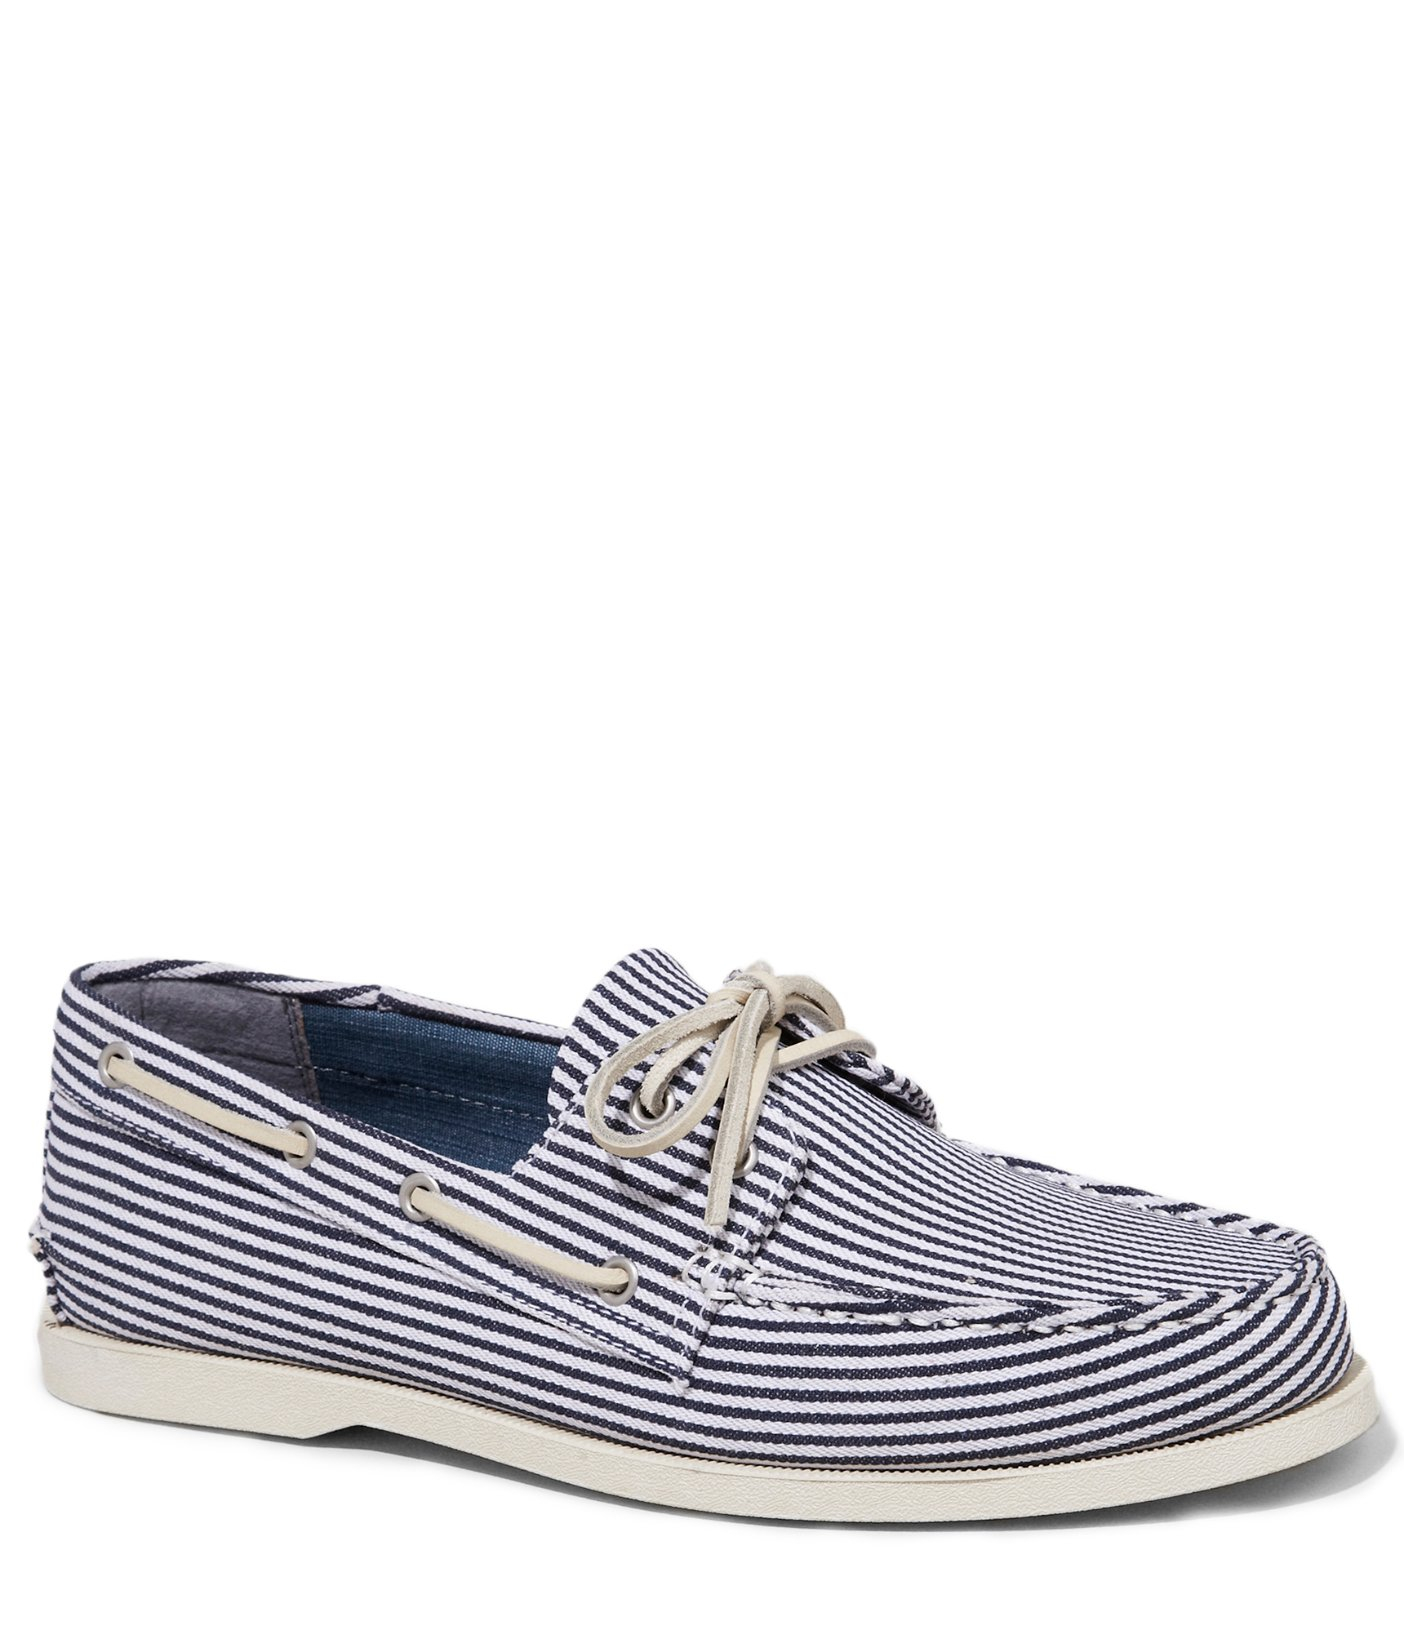 express striped canvas boat shoe in blue for lyst